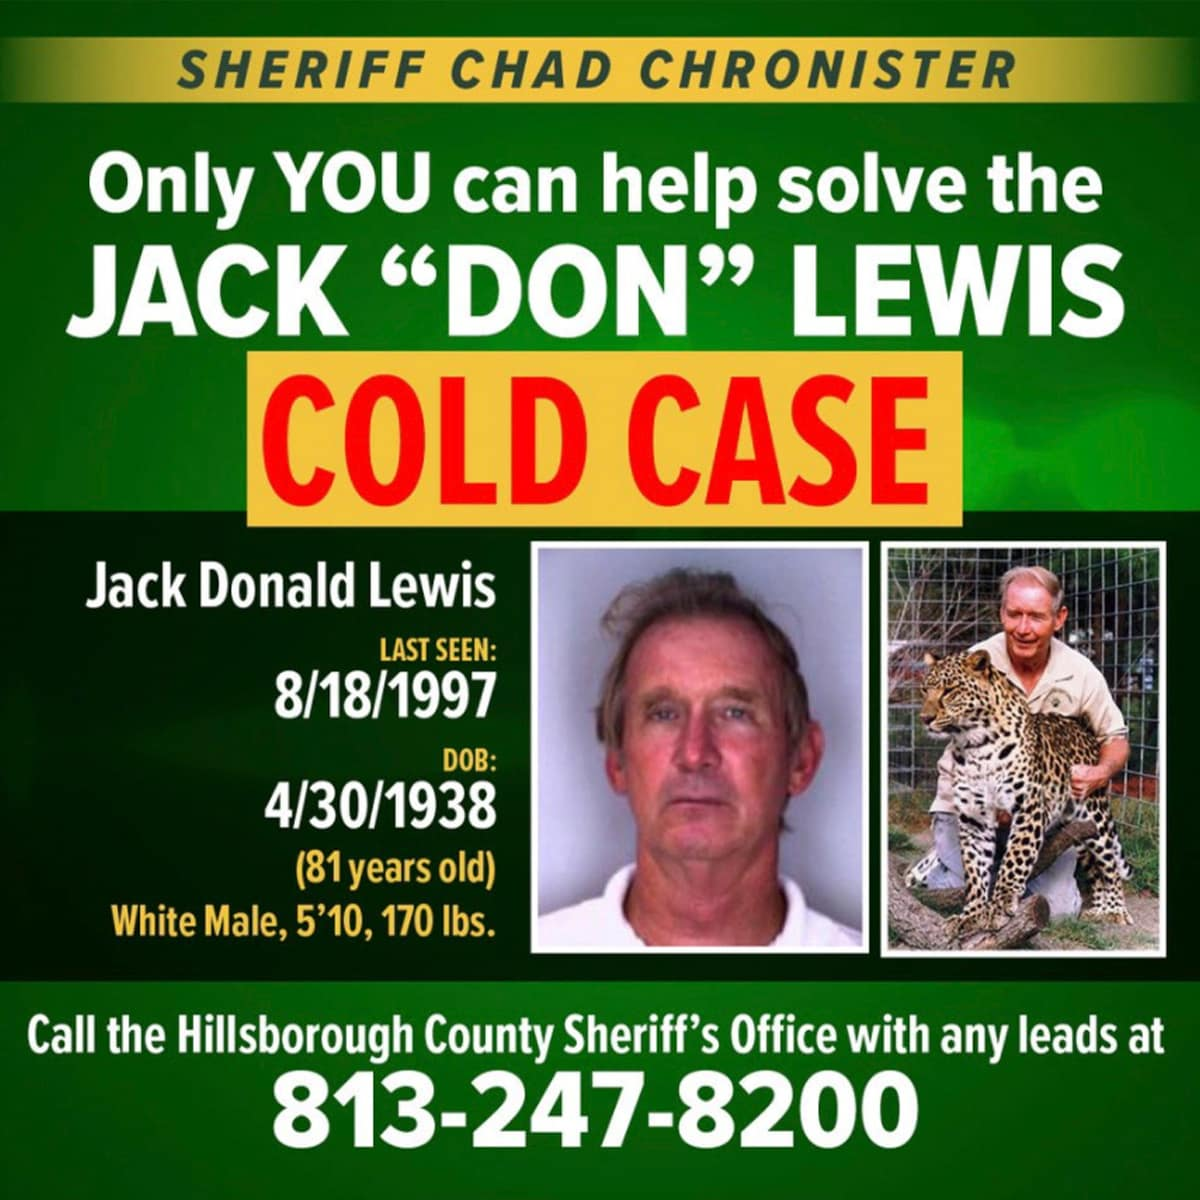 Photo of Don Lewis information graphic